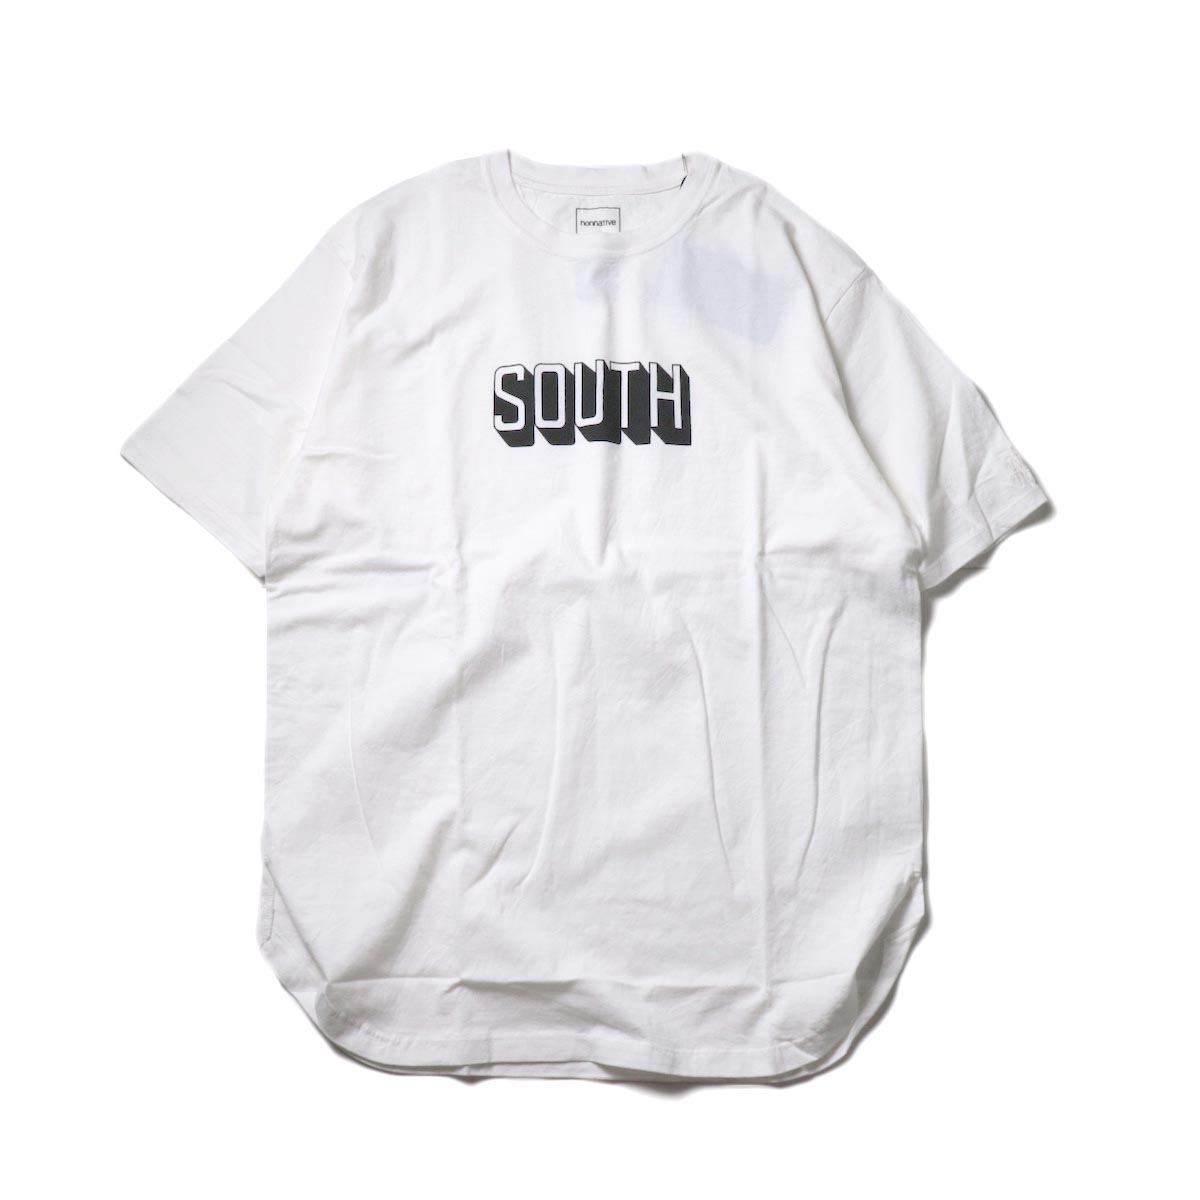 nonnative / DWELLER S/S TEE 'SOUTH' by LORD ECHO (White)